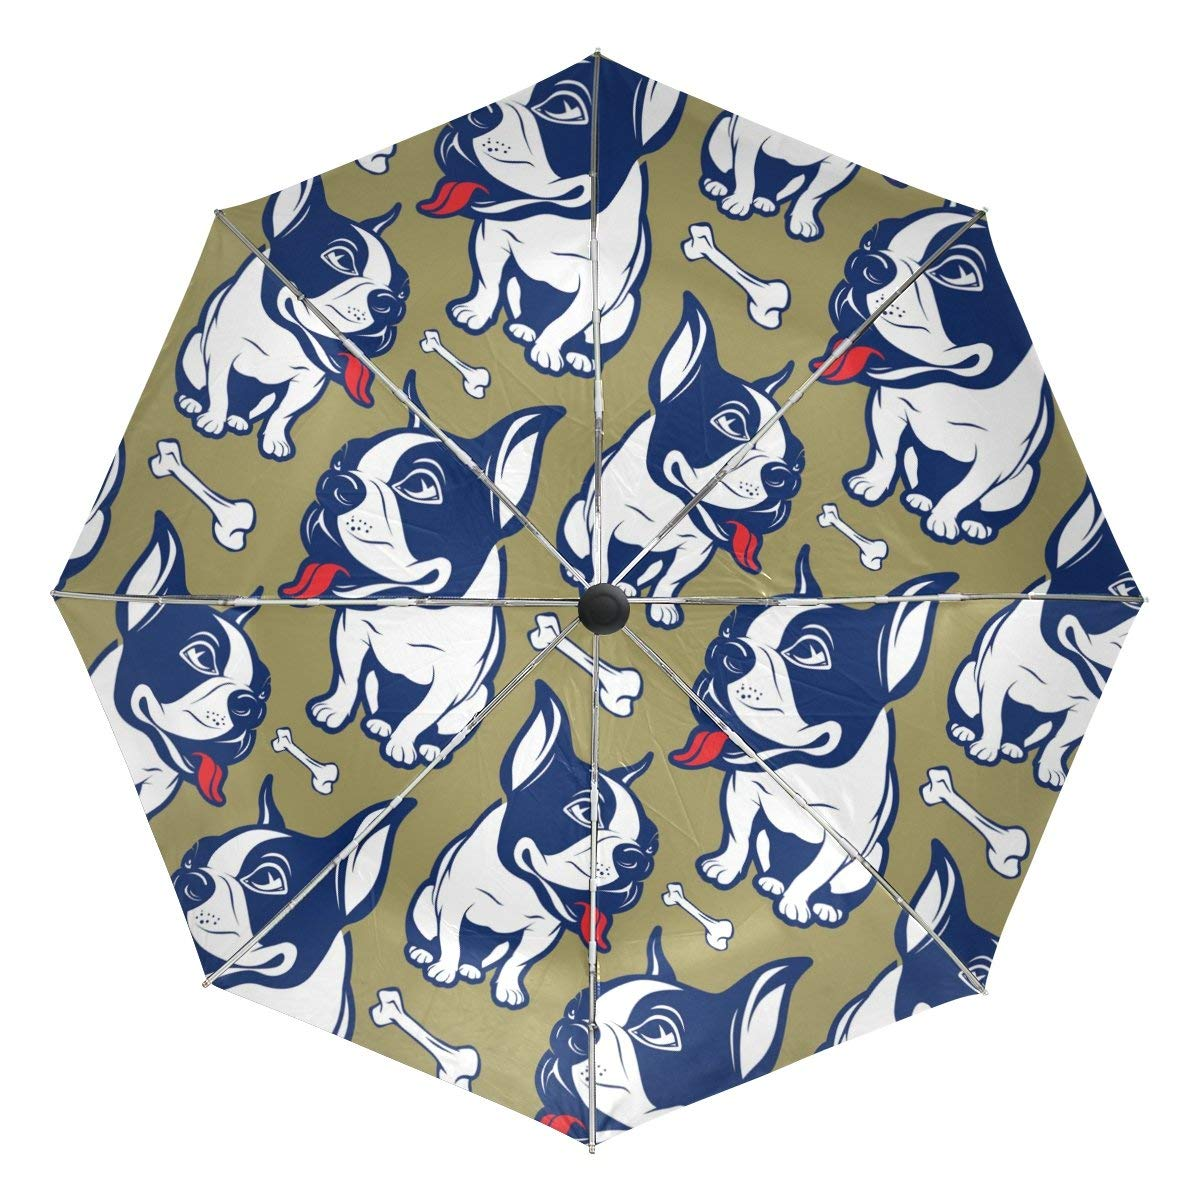 MAPOLO Cute Pug Dog Puppy Snout Eyes Print Windproof Rain Travel Canopy 3 Folds Auto Open Close Button Umbrella